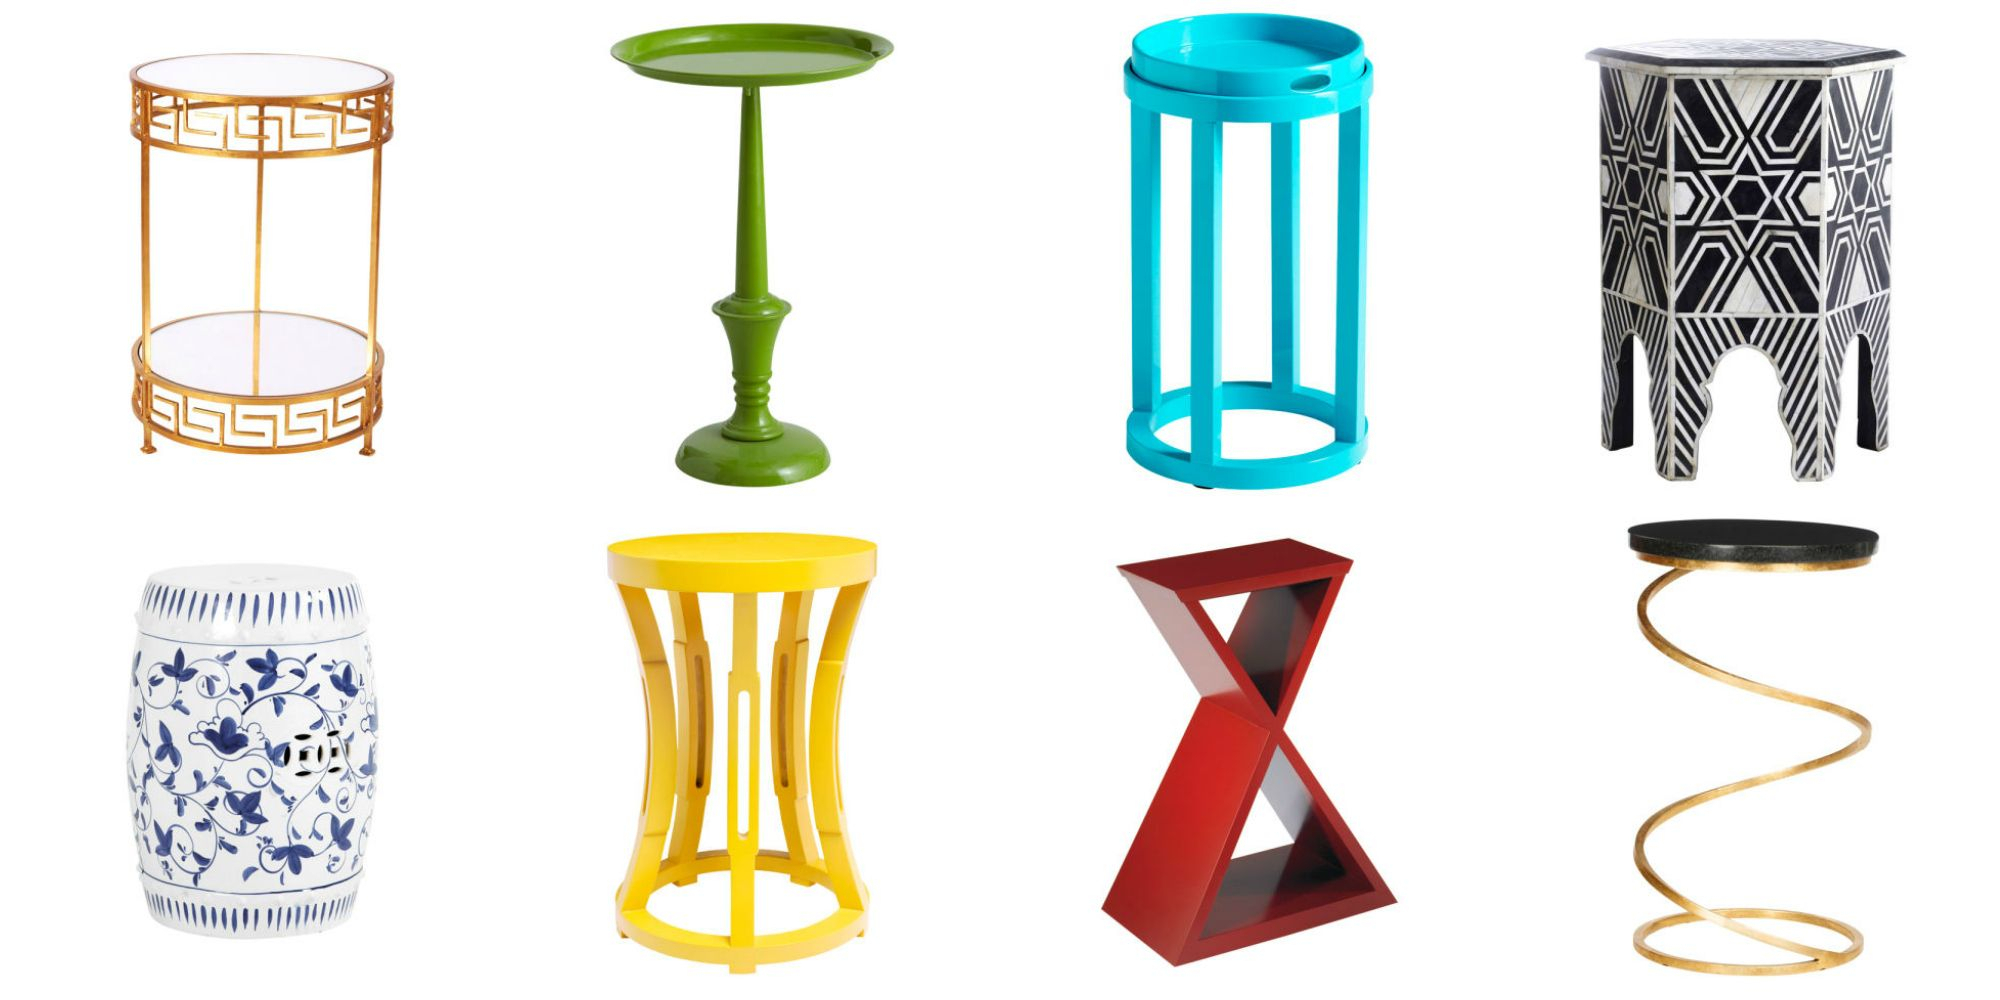 Small Accent Tables – Side Table Designs Intended For Swanson Ceramic Garden Stools (View 21 of 25)